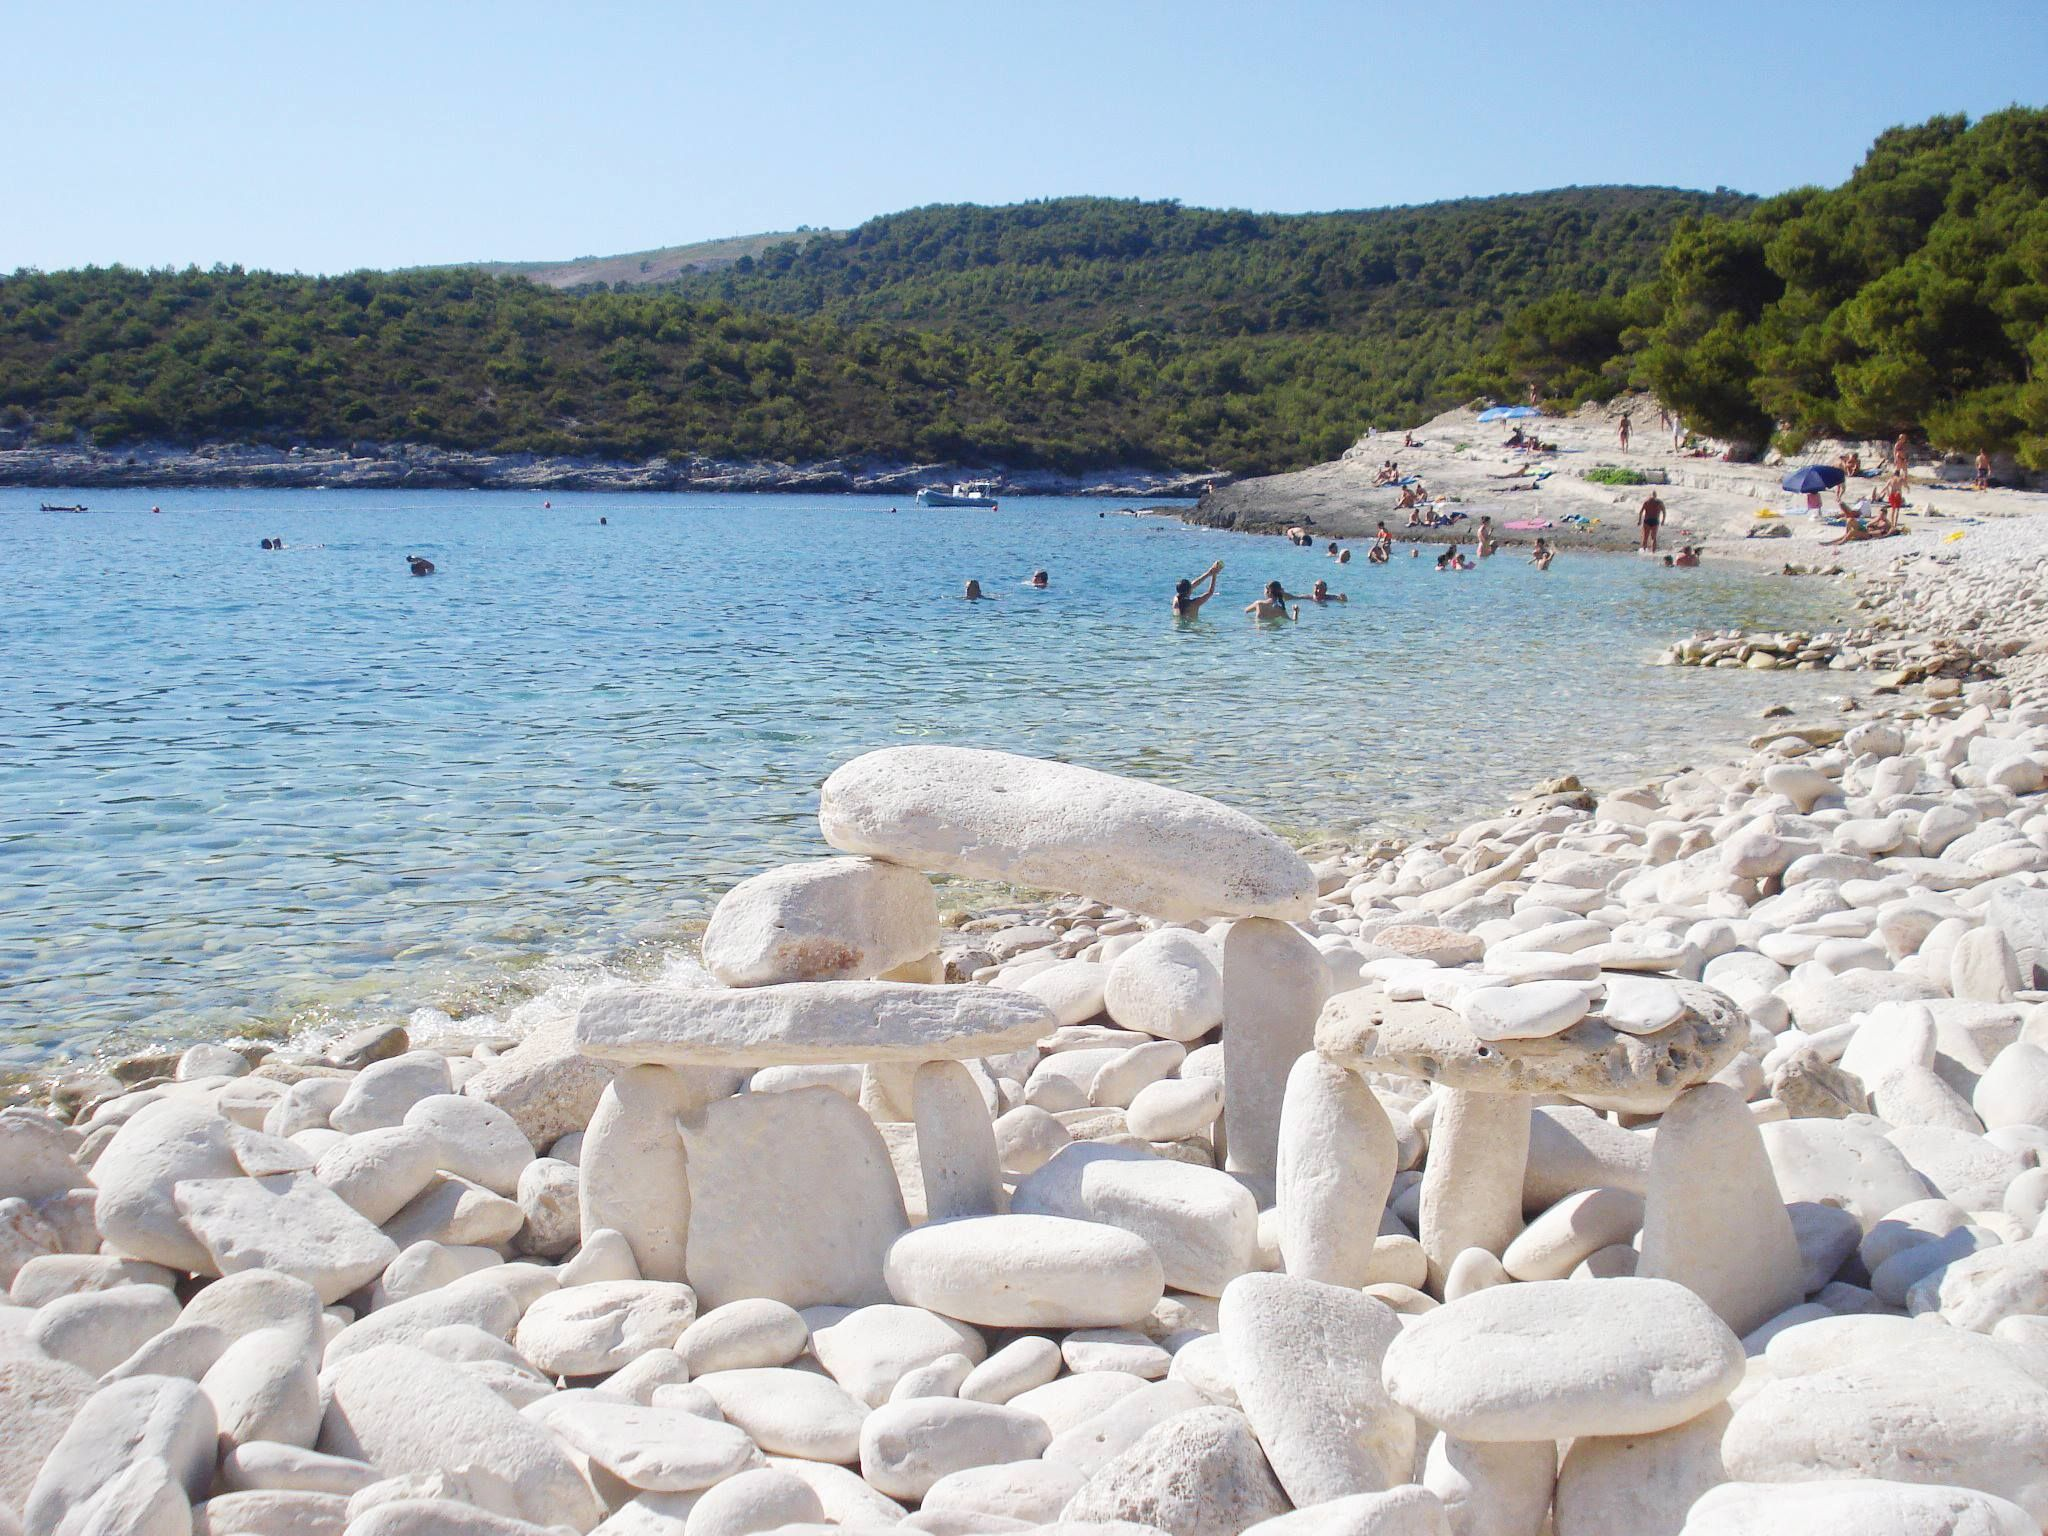 Silver Srebrna Beach On The Island Of Vis Is One Of The Most